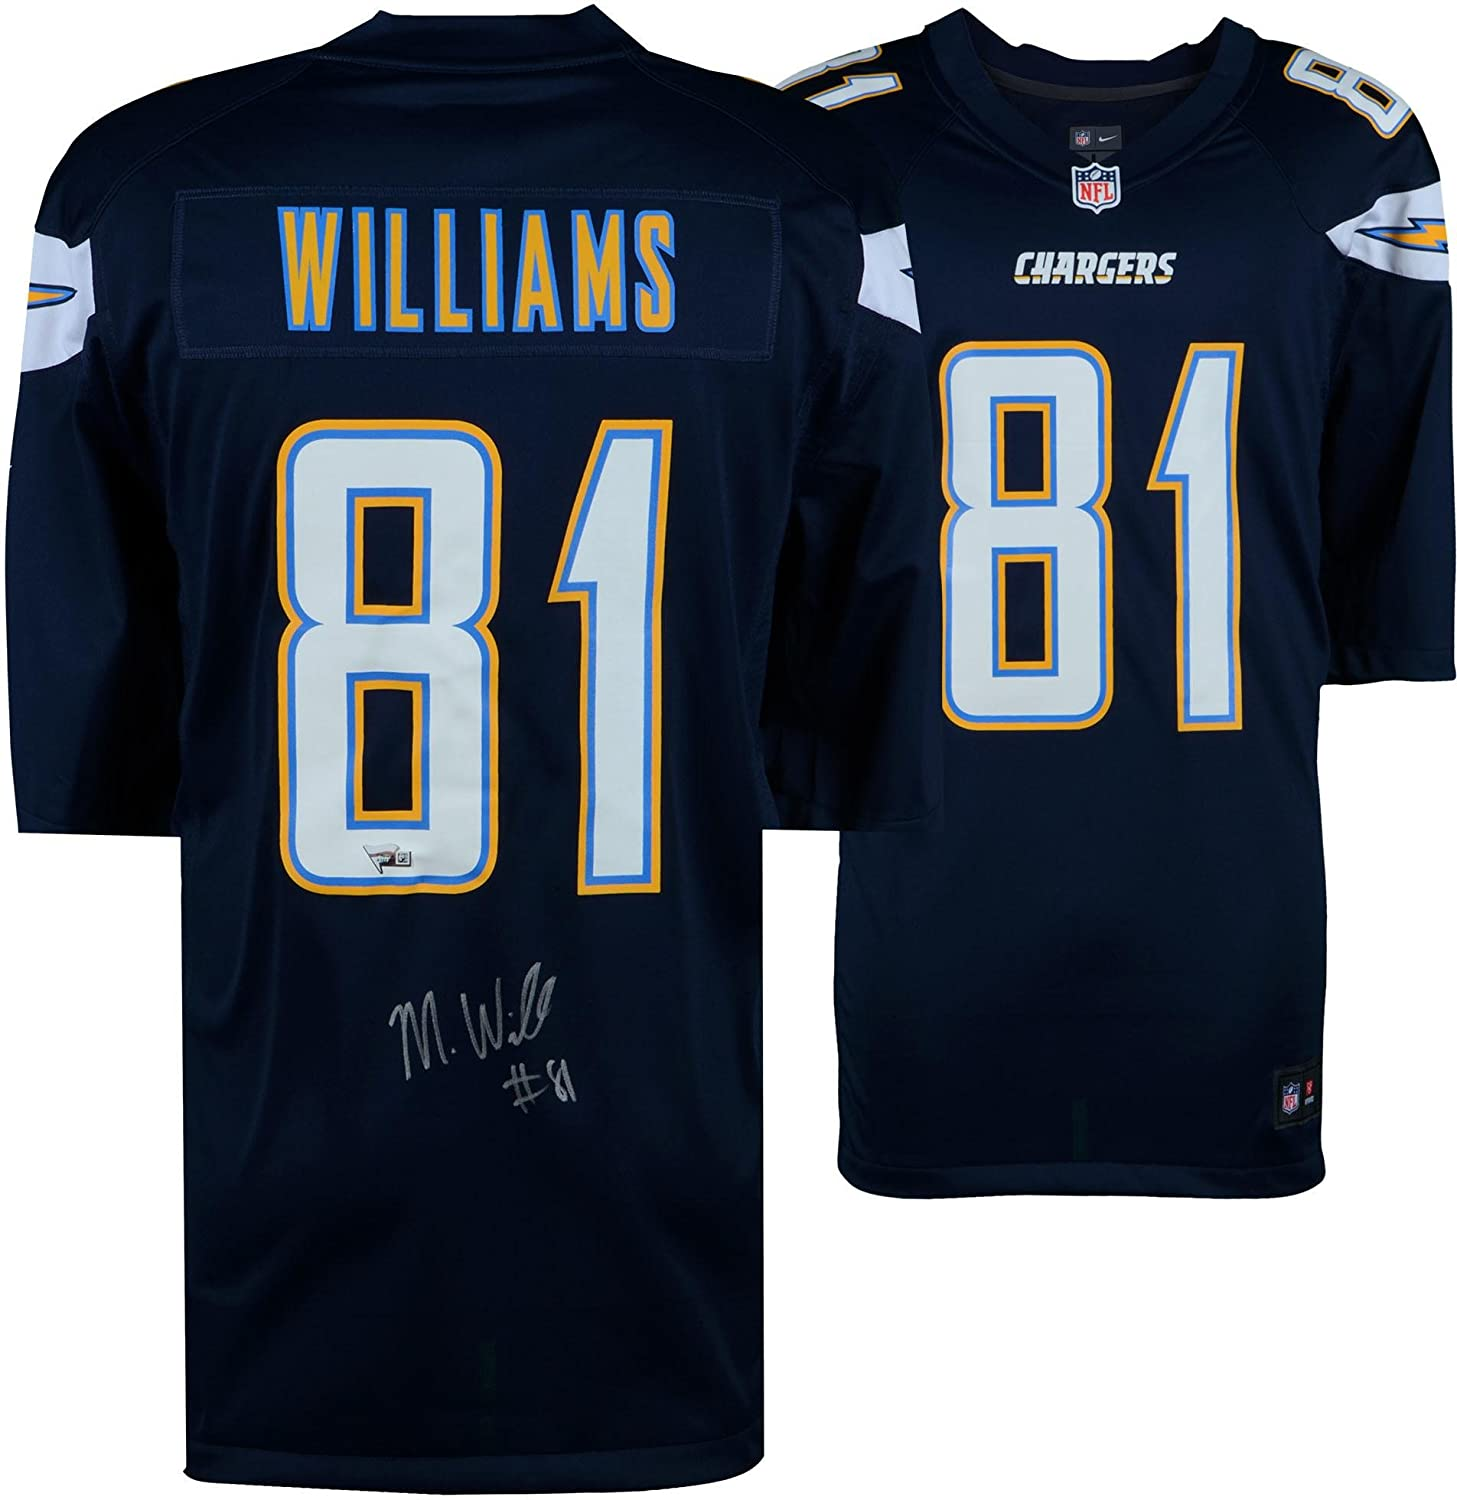 quality design cb5d0 77f80 Mike Williams Los Angeles Chargers Autographed Navy Nike ...